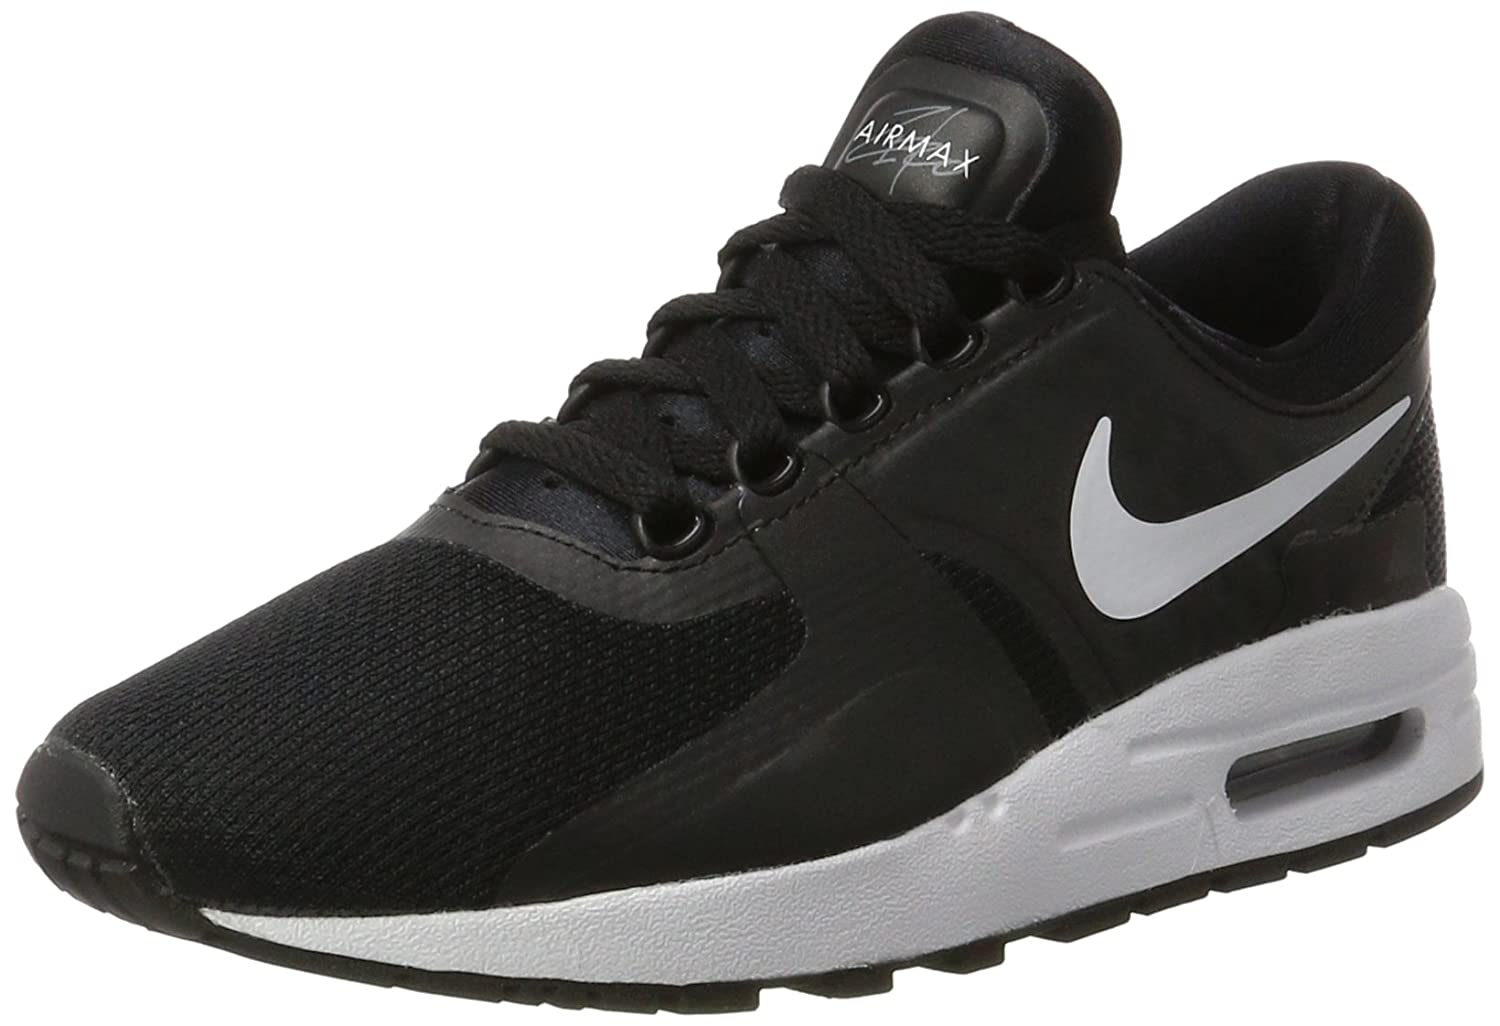 Nike  Air Max Zero Essential GS Running Shoe B06WP84XMG 7 M US Big Kid|Black/Dark Grey/White